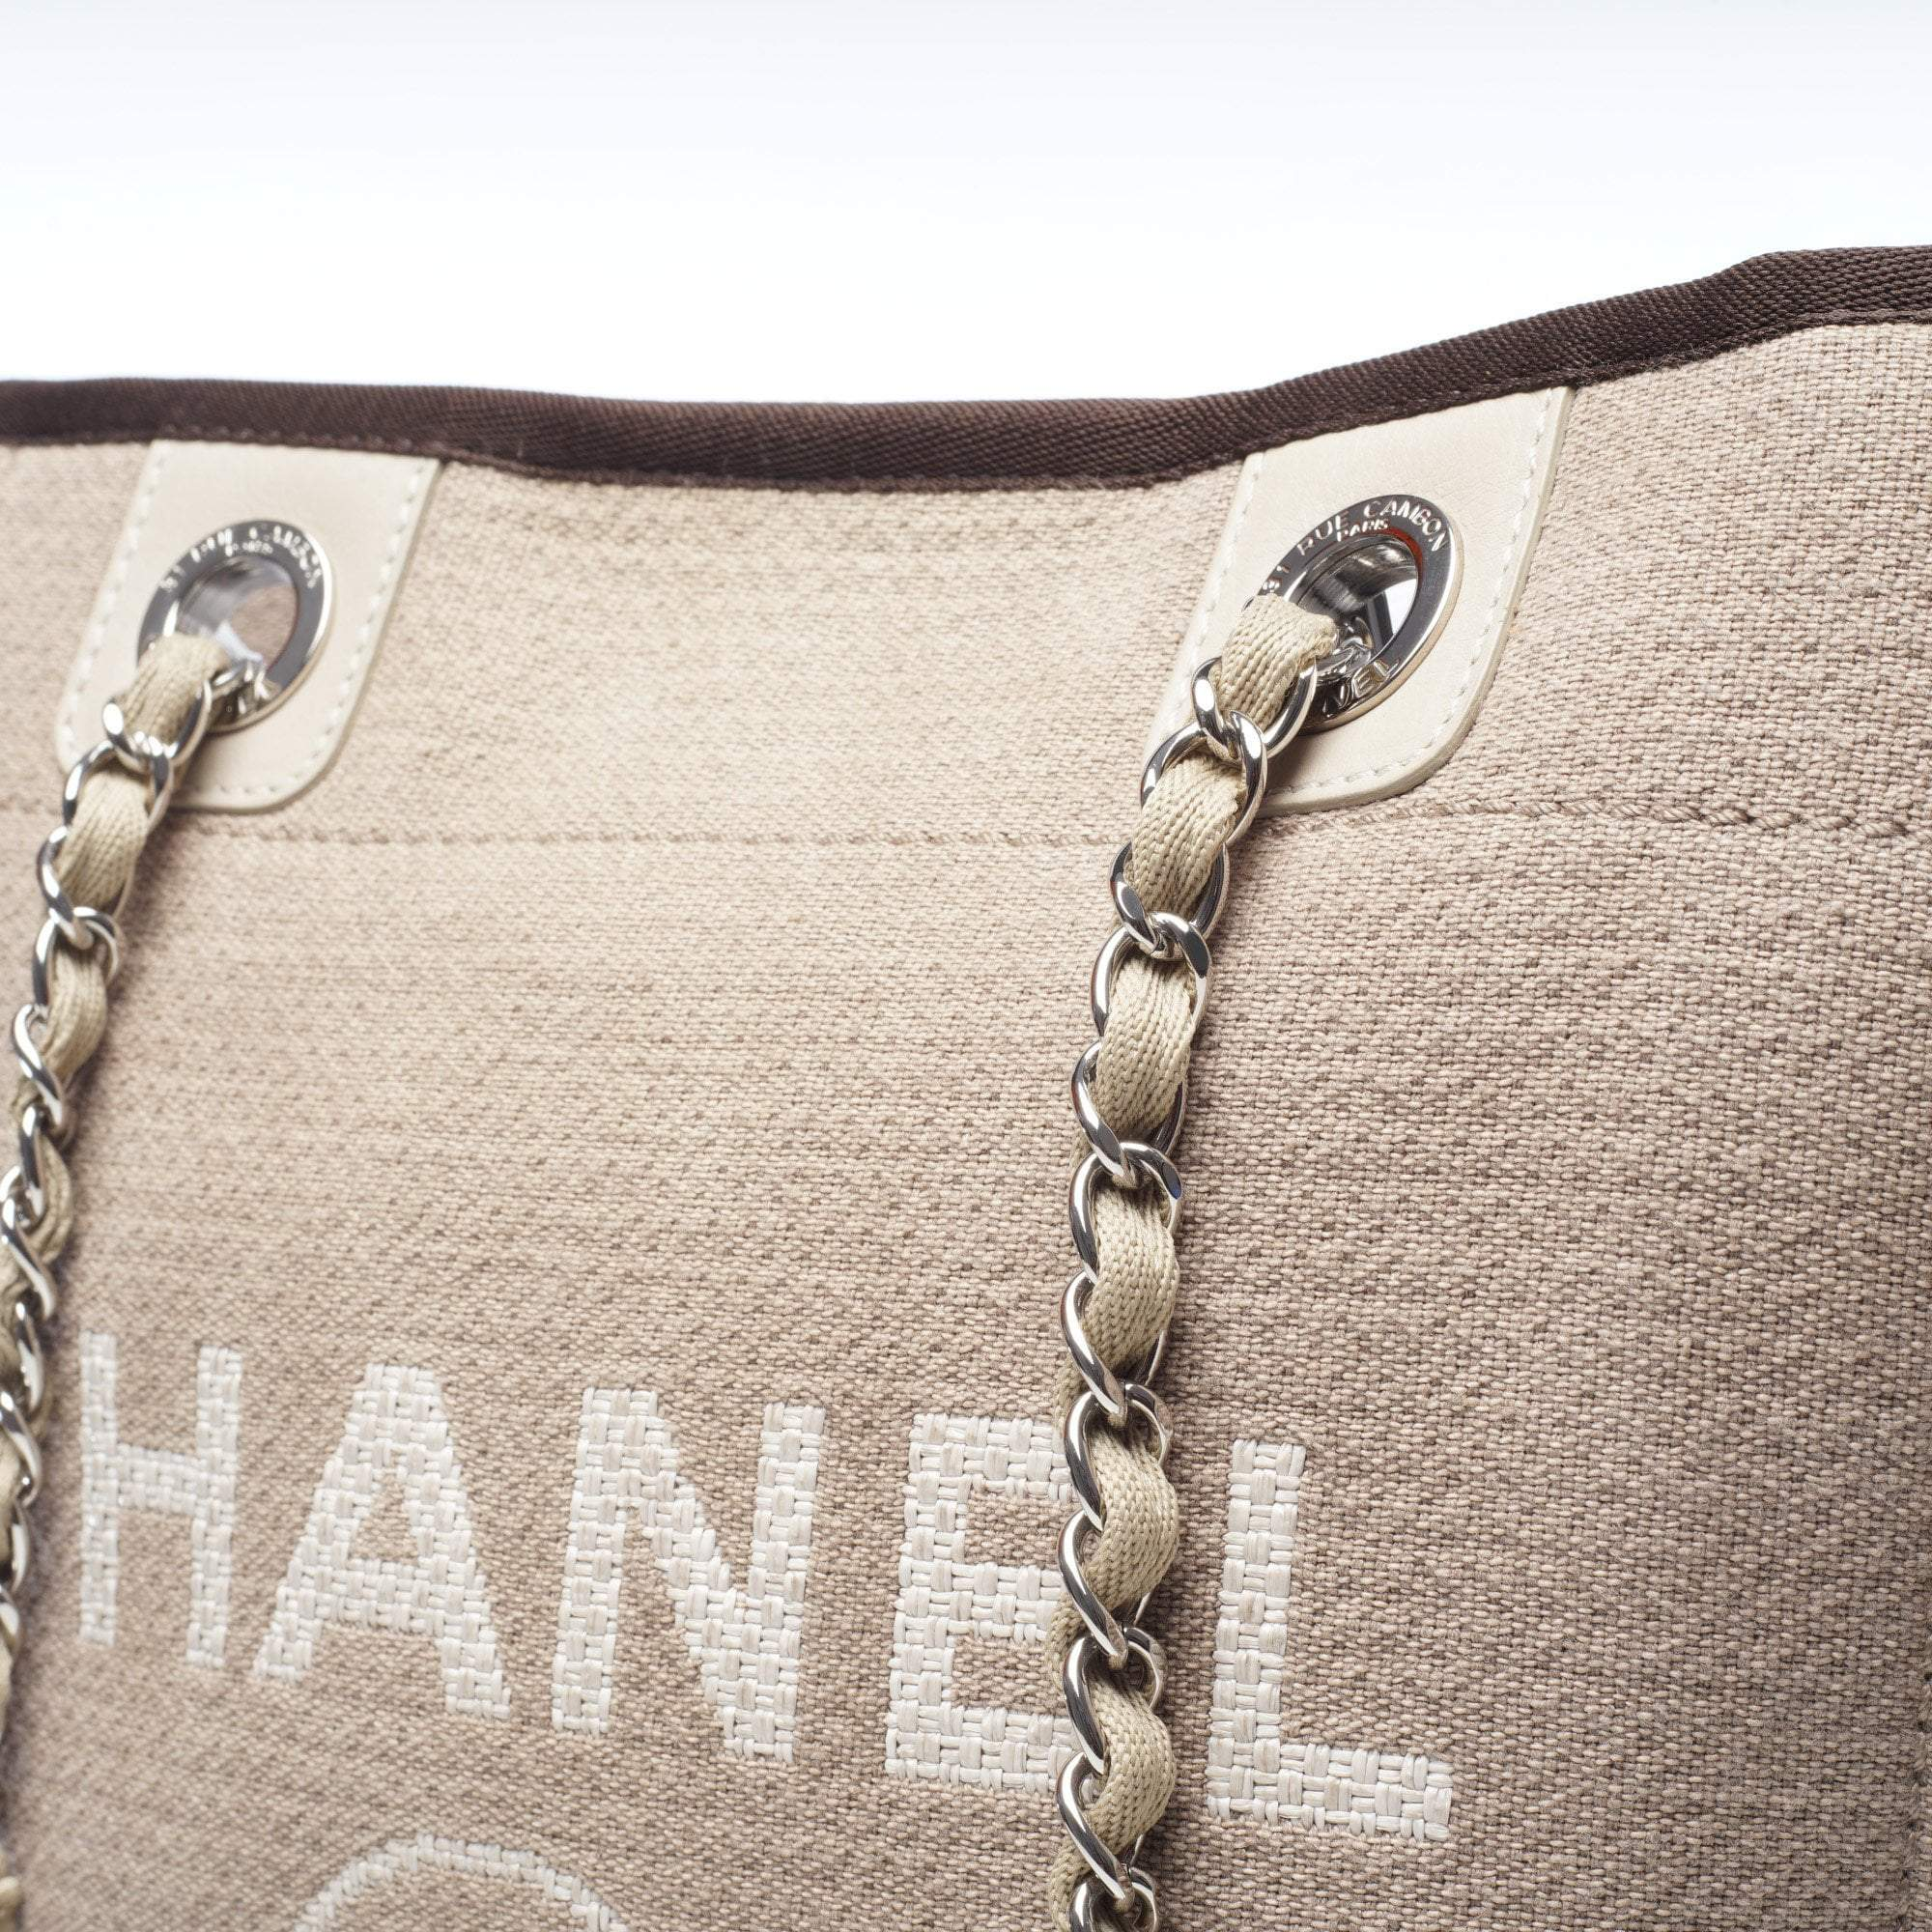 Chanel Khaki Medium Deauville Canvas Tote